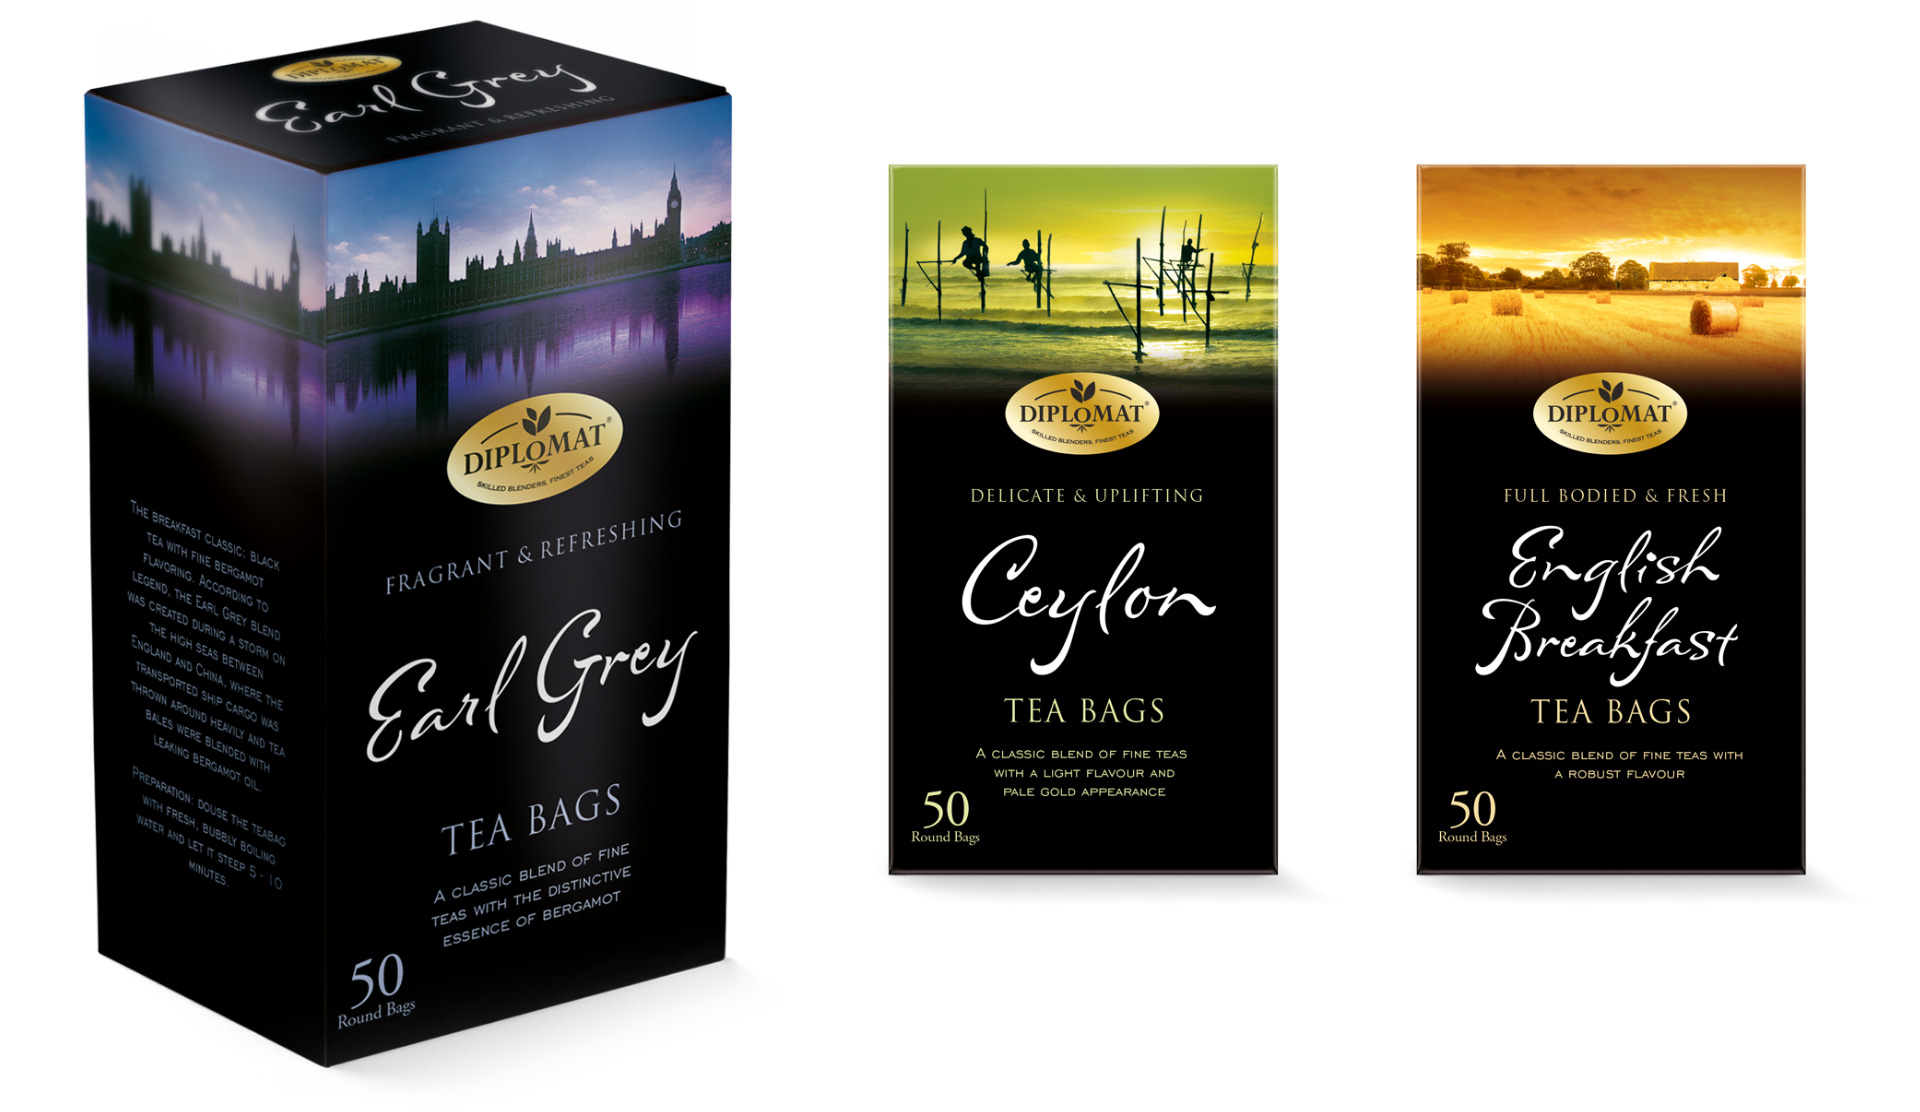 Diplomat tea bag packaging design by Louise Russell Design